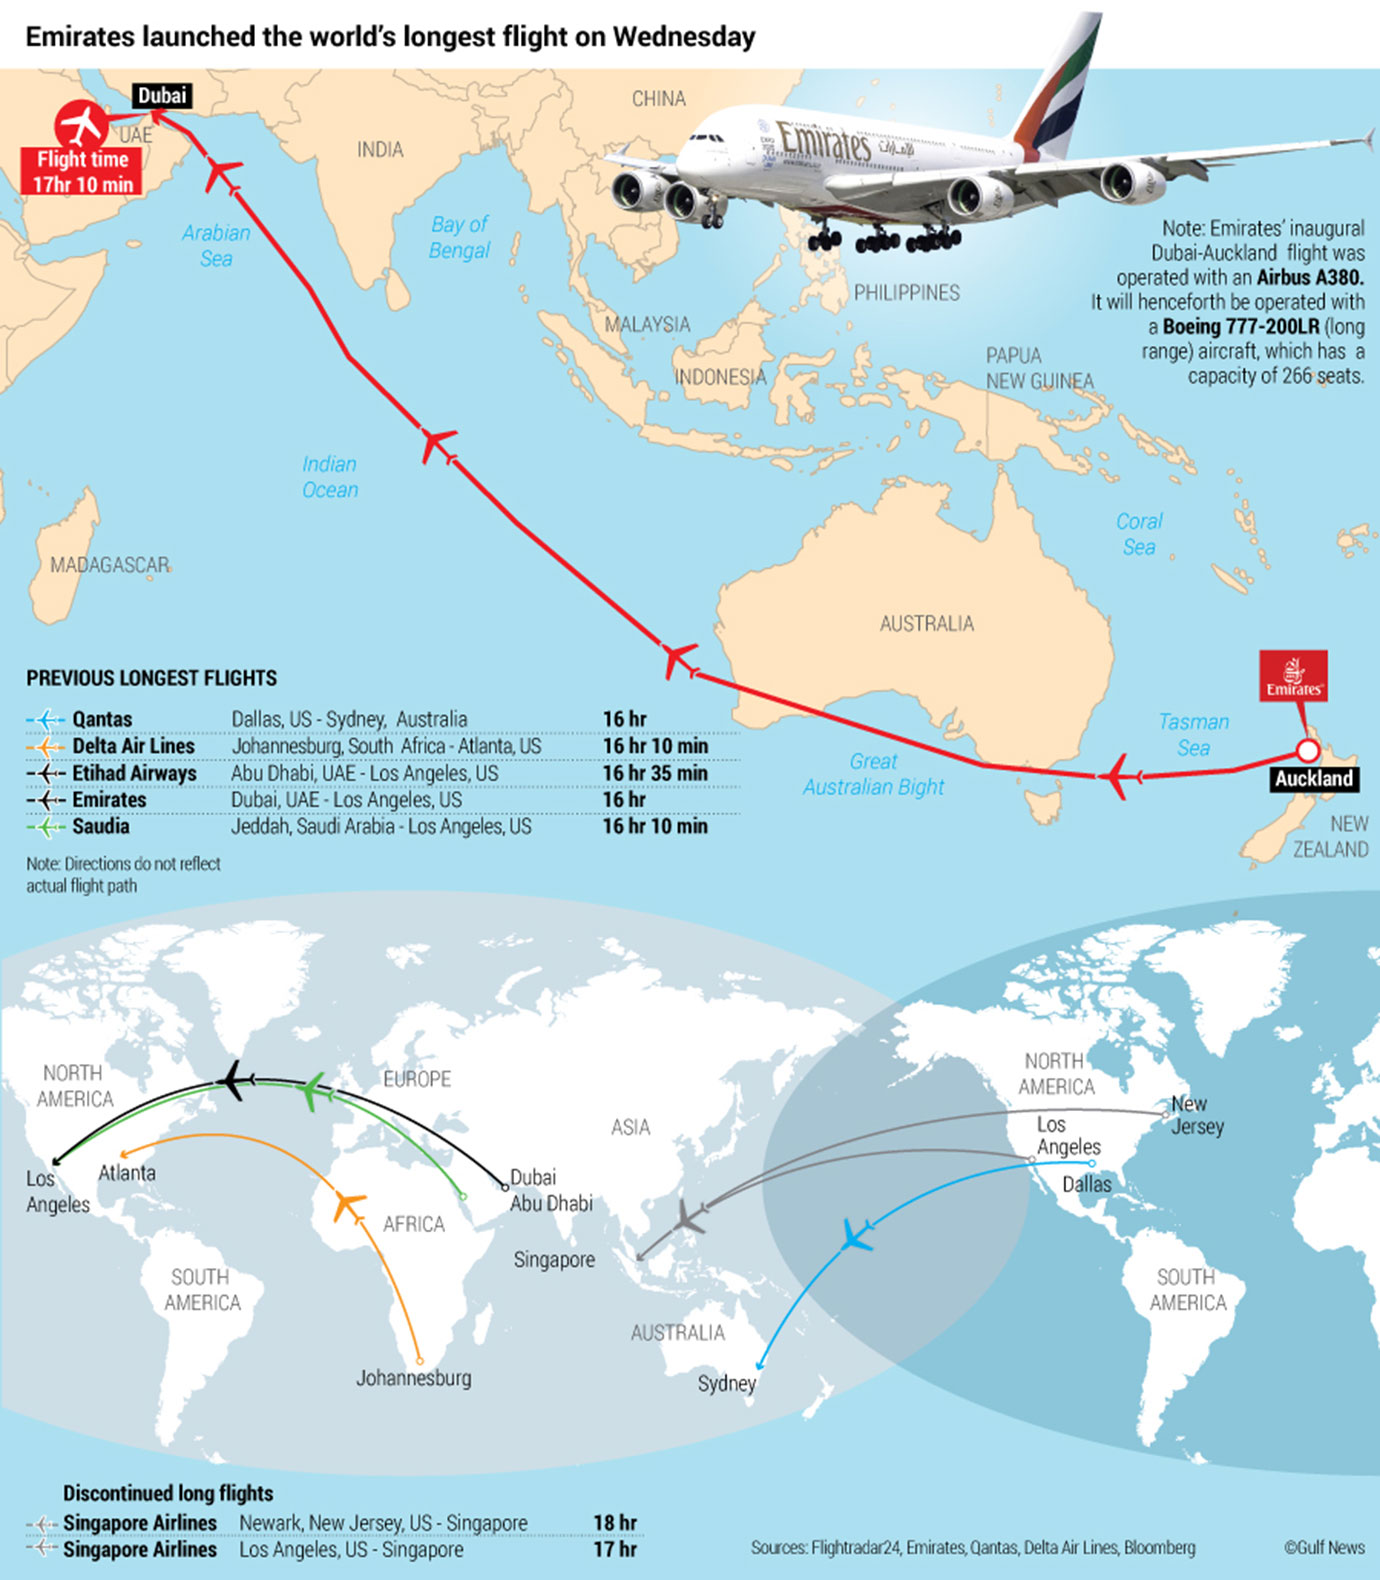 air india s delhi san francisco flight claims the world s longest by flying distance but when measured on the surface of the earth doha and auckland are